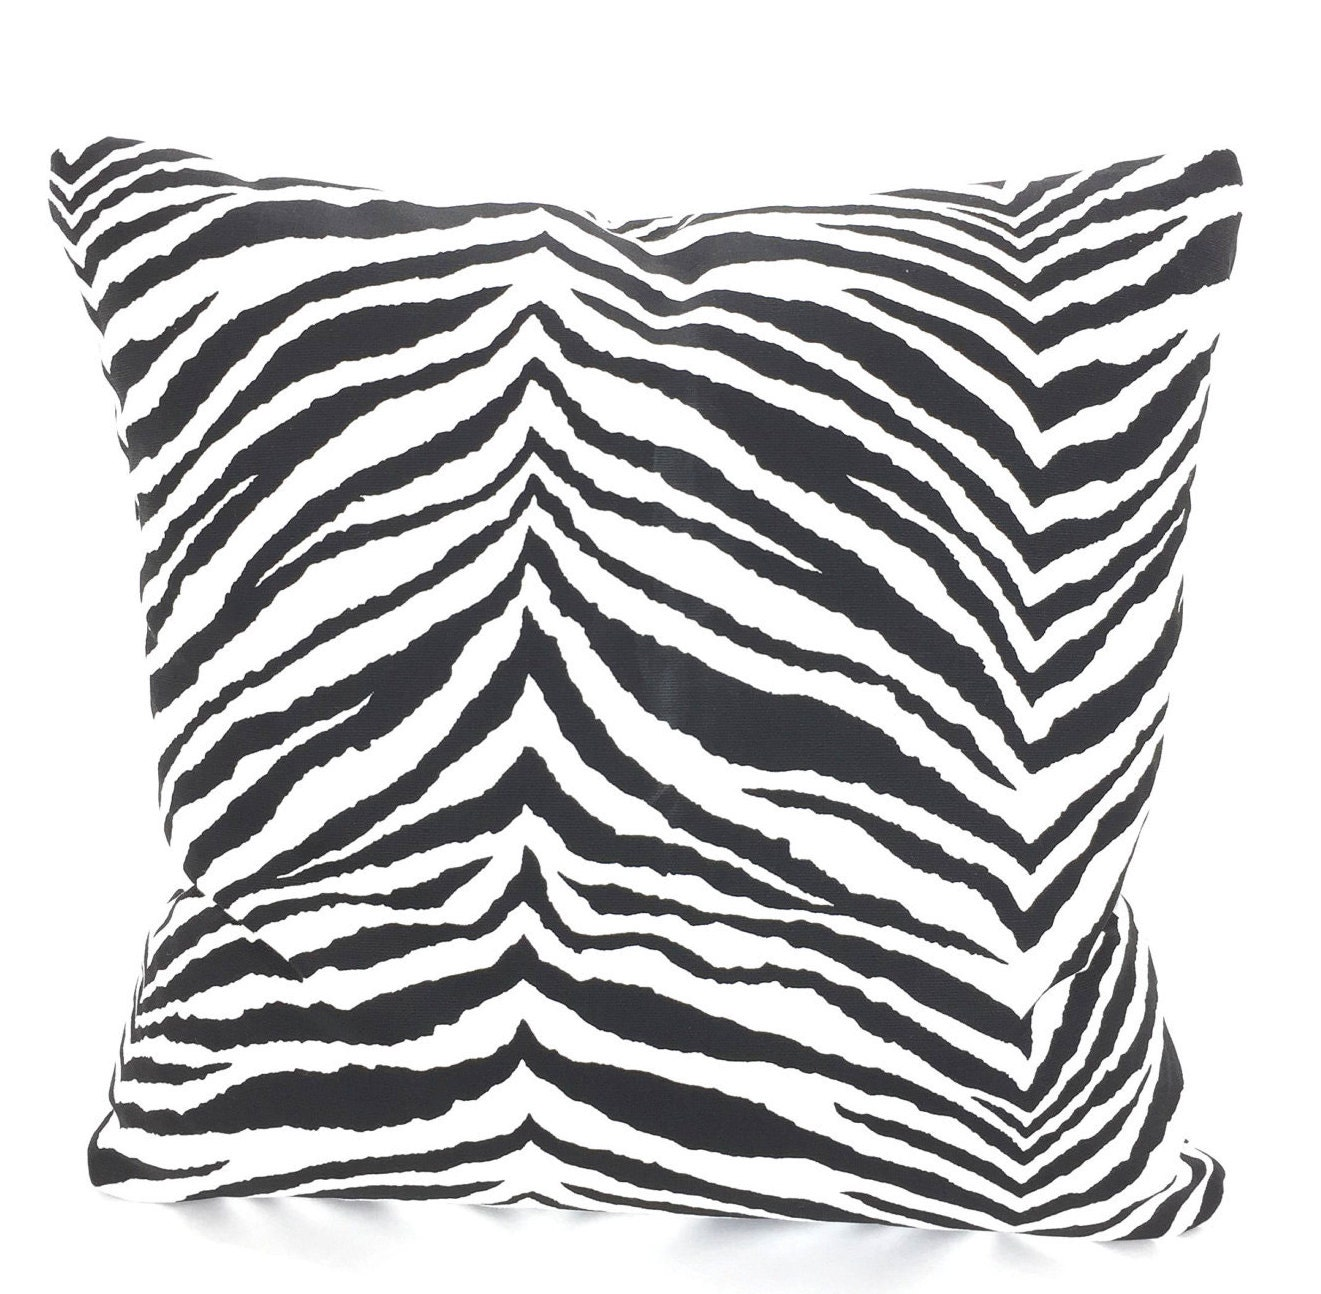 Black White Zebra Pillow Cover Decorative Throw Pillows Cushions Black White Zebra Euro Sham Couch Bed Sofa One Or More All Sizes